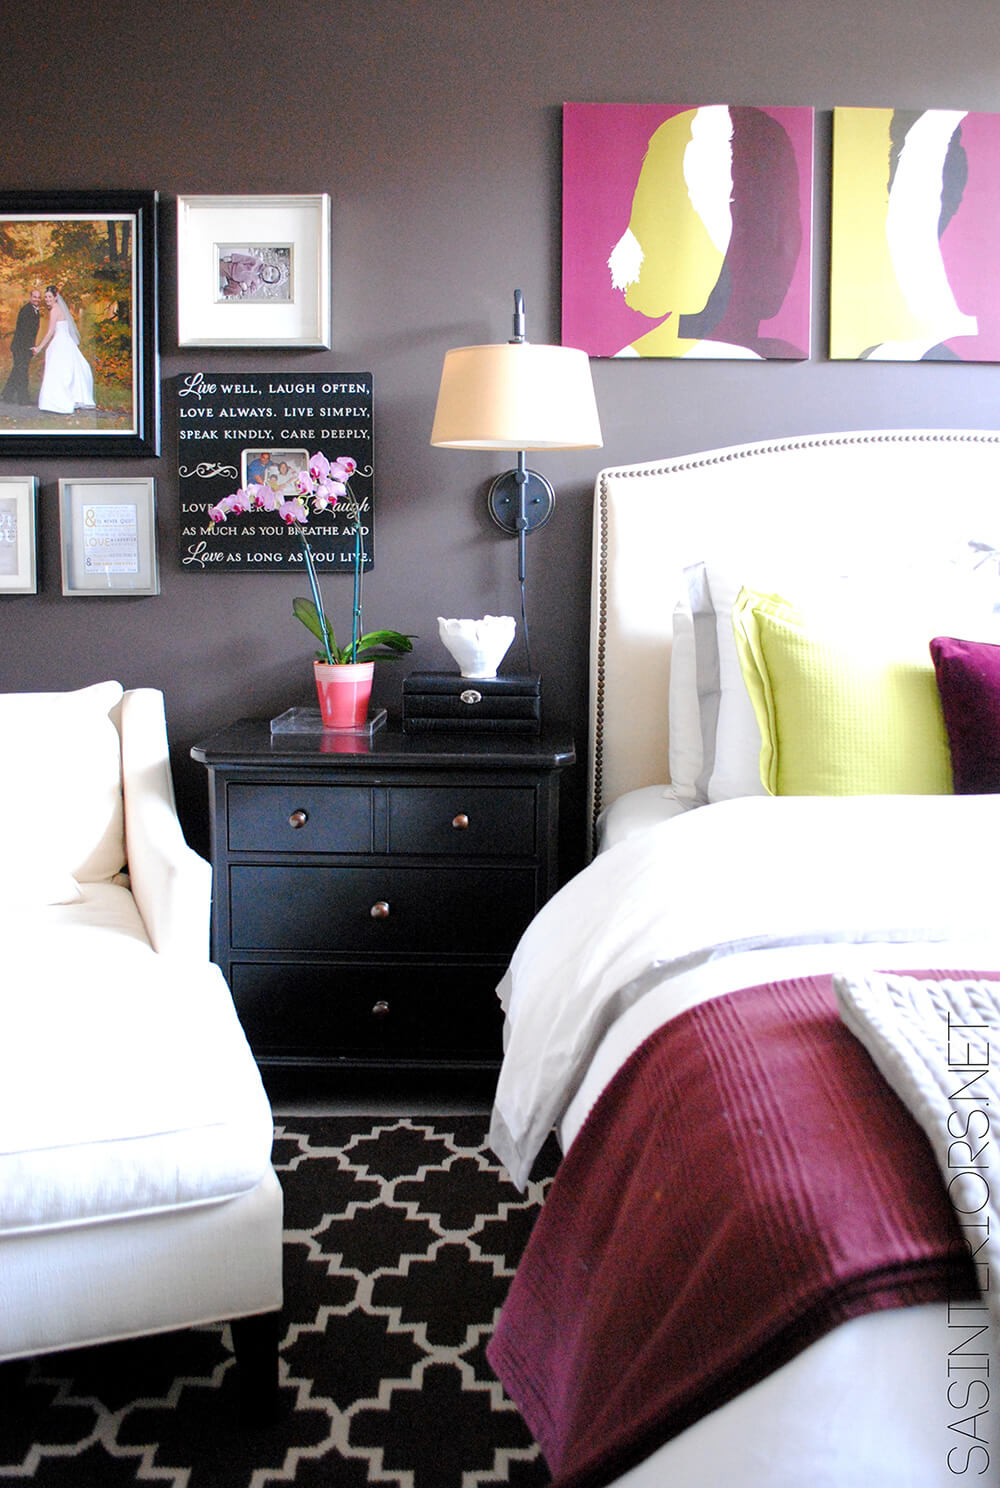 3 Bedroom Color Trends to Follow This Year  Adorable Home